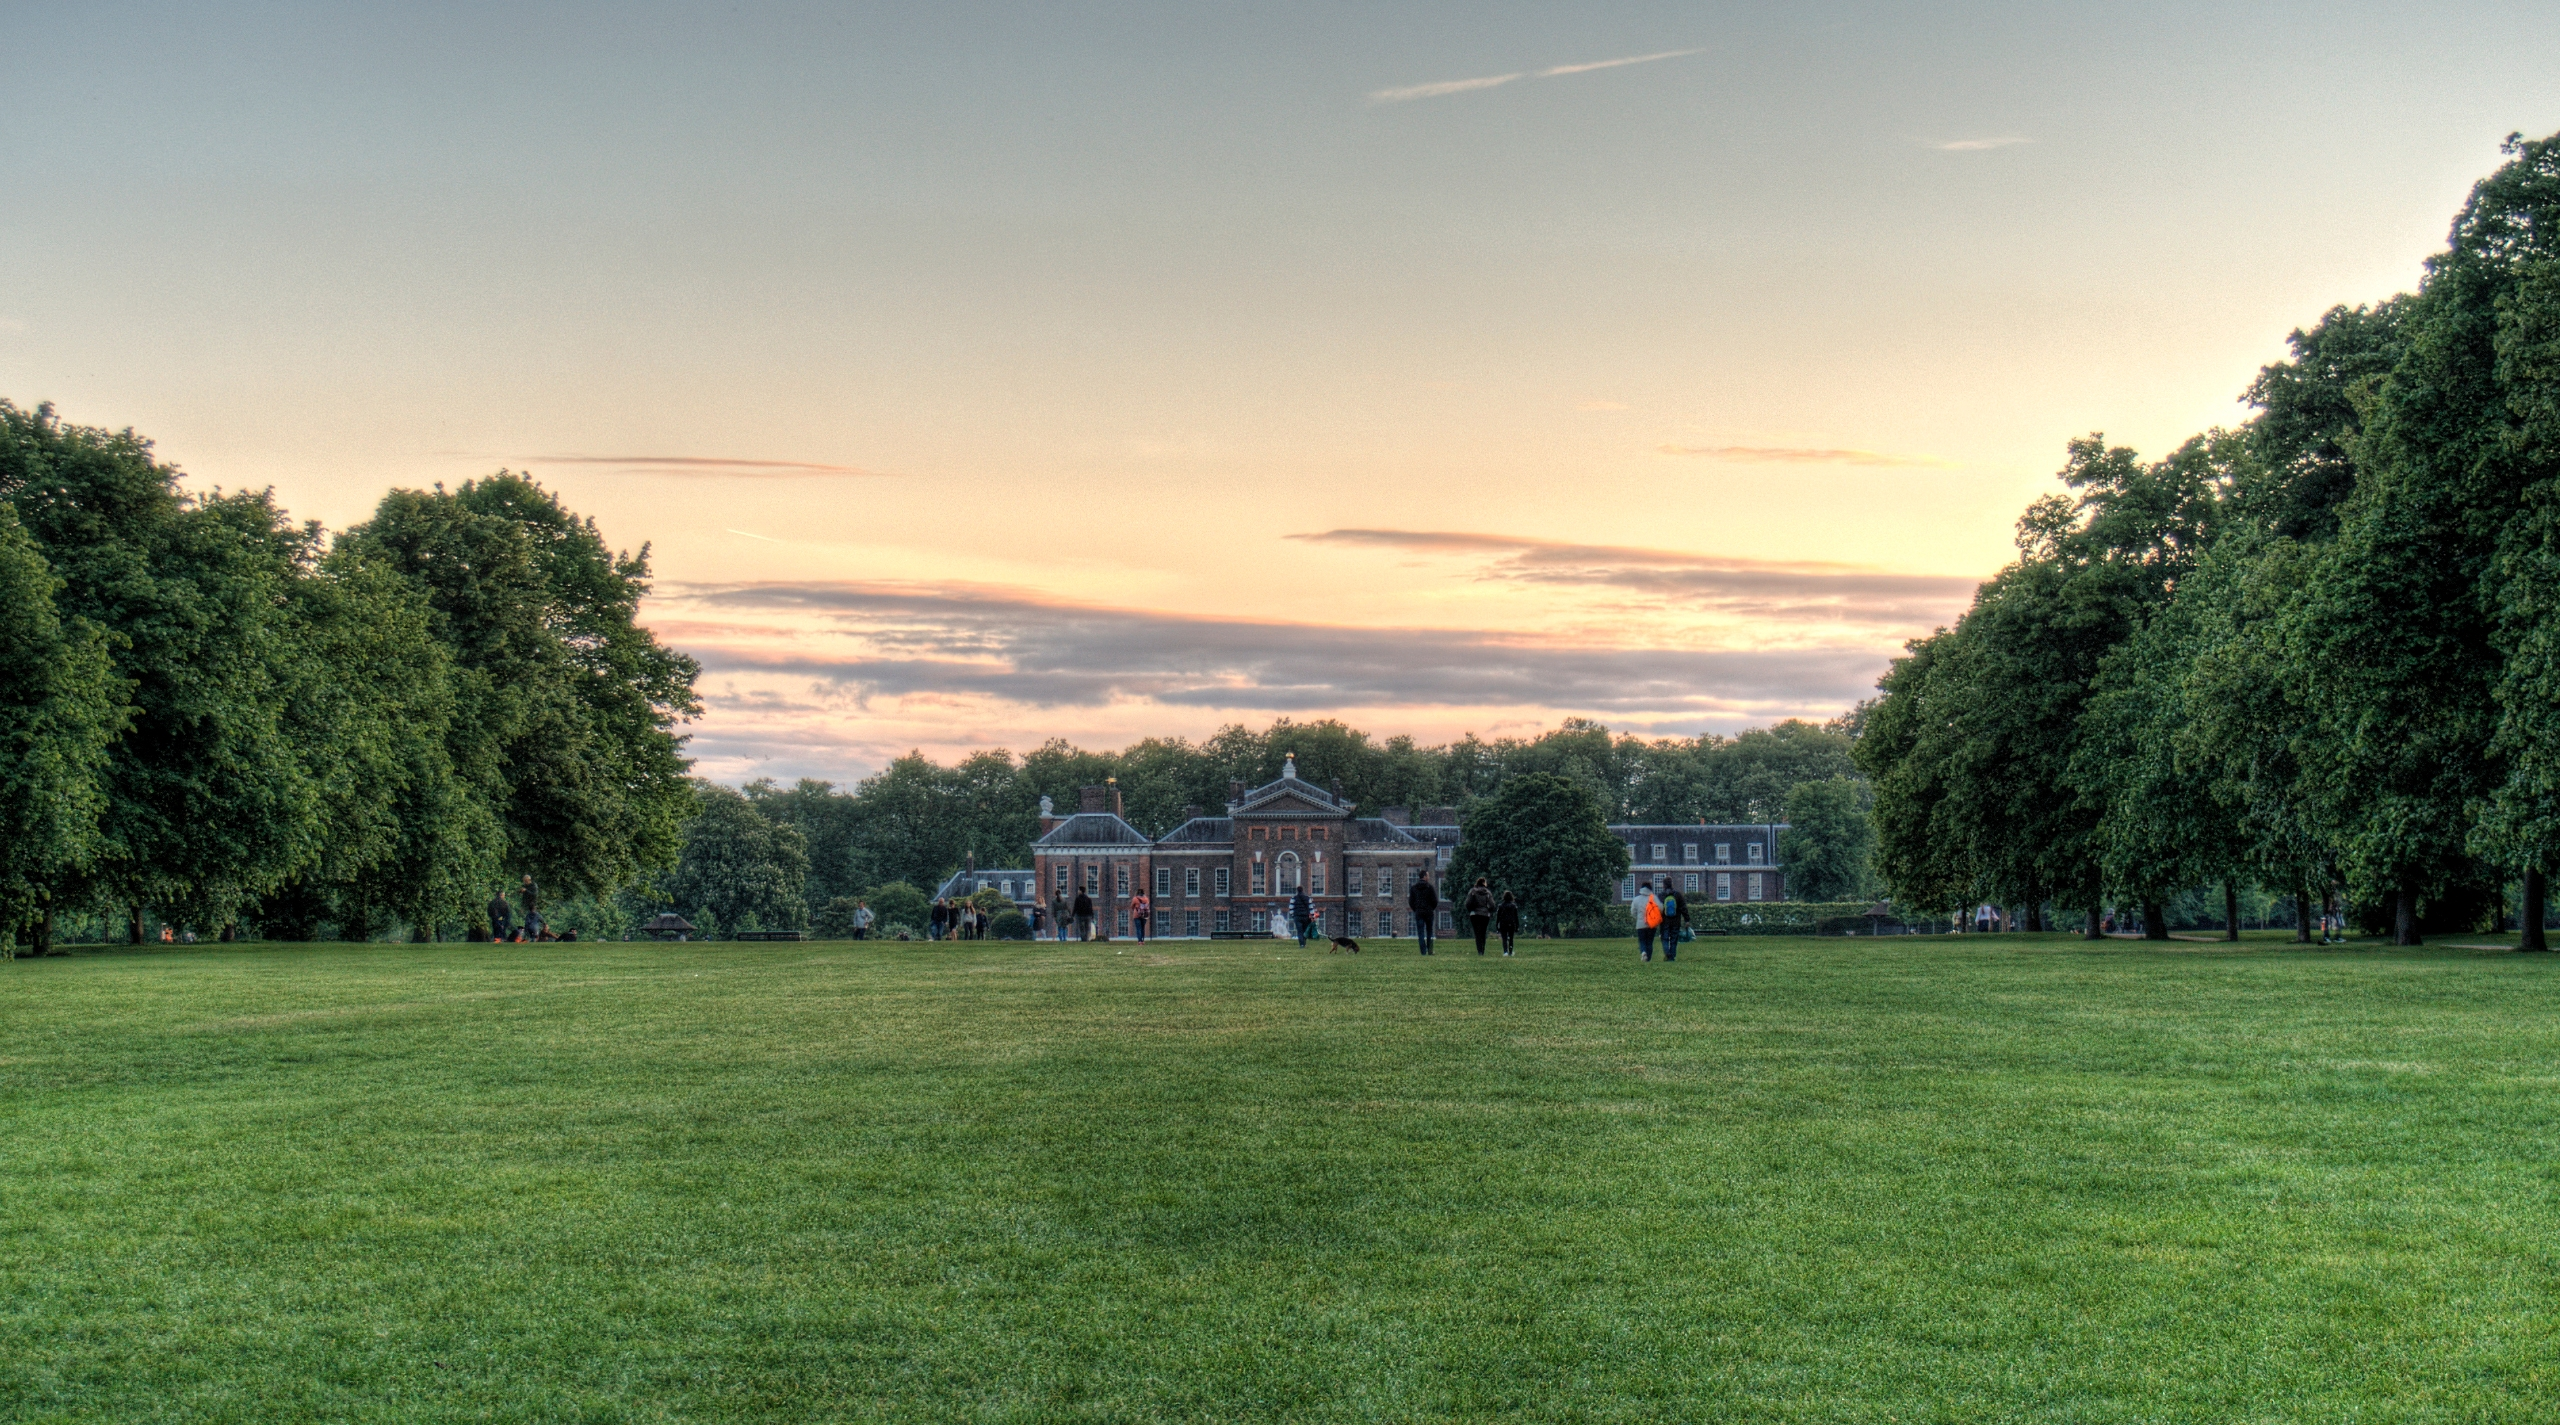 Kensington Palace - London phot - neilhoward | ello